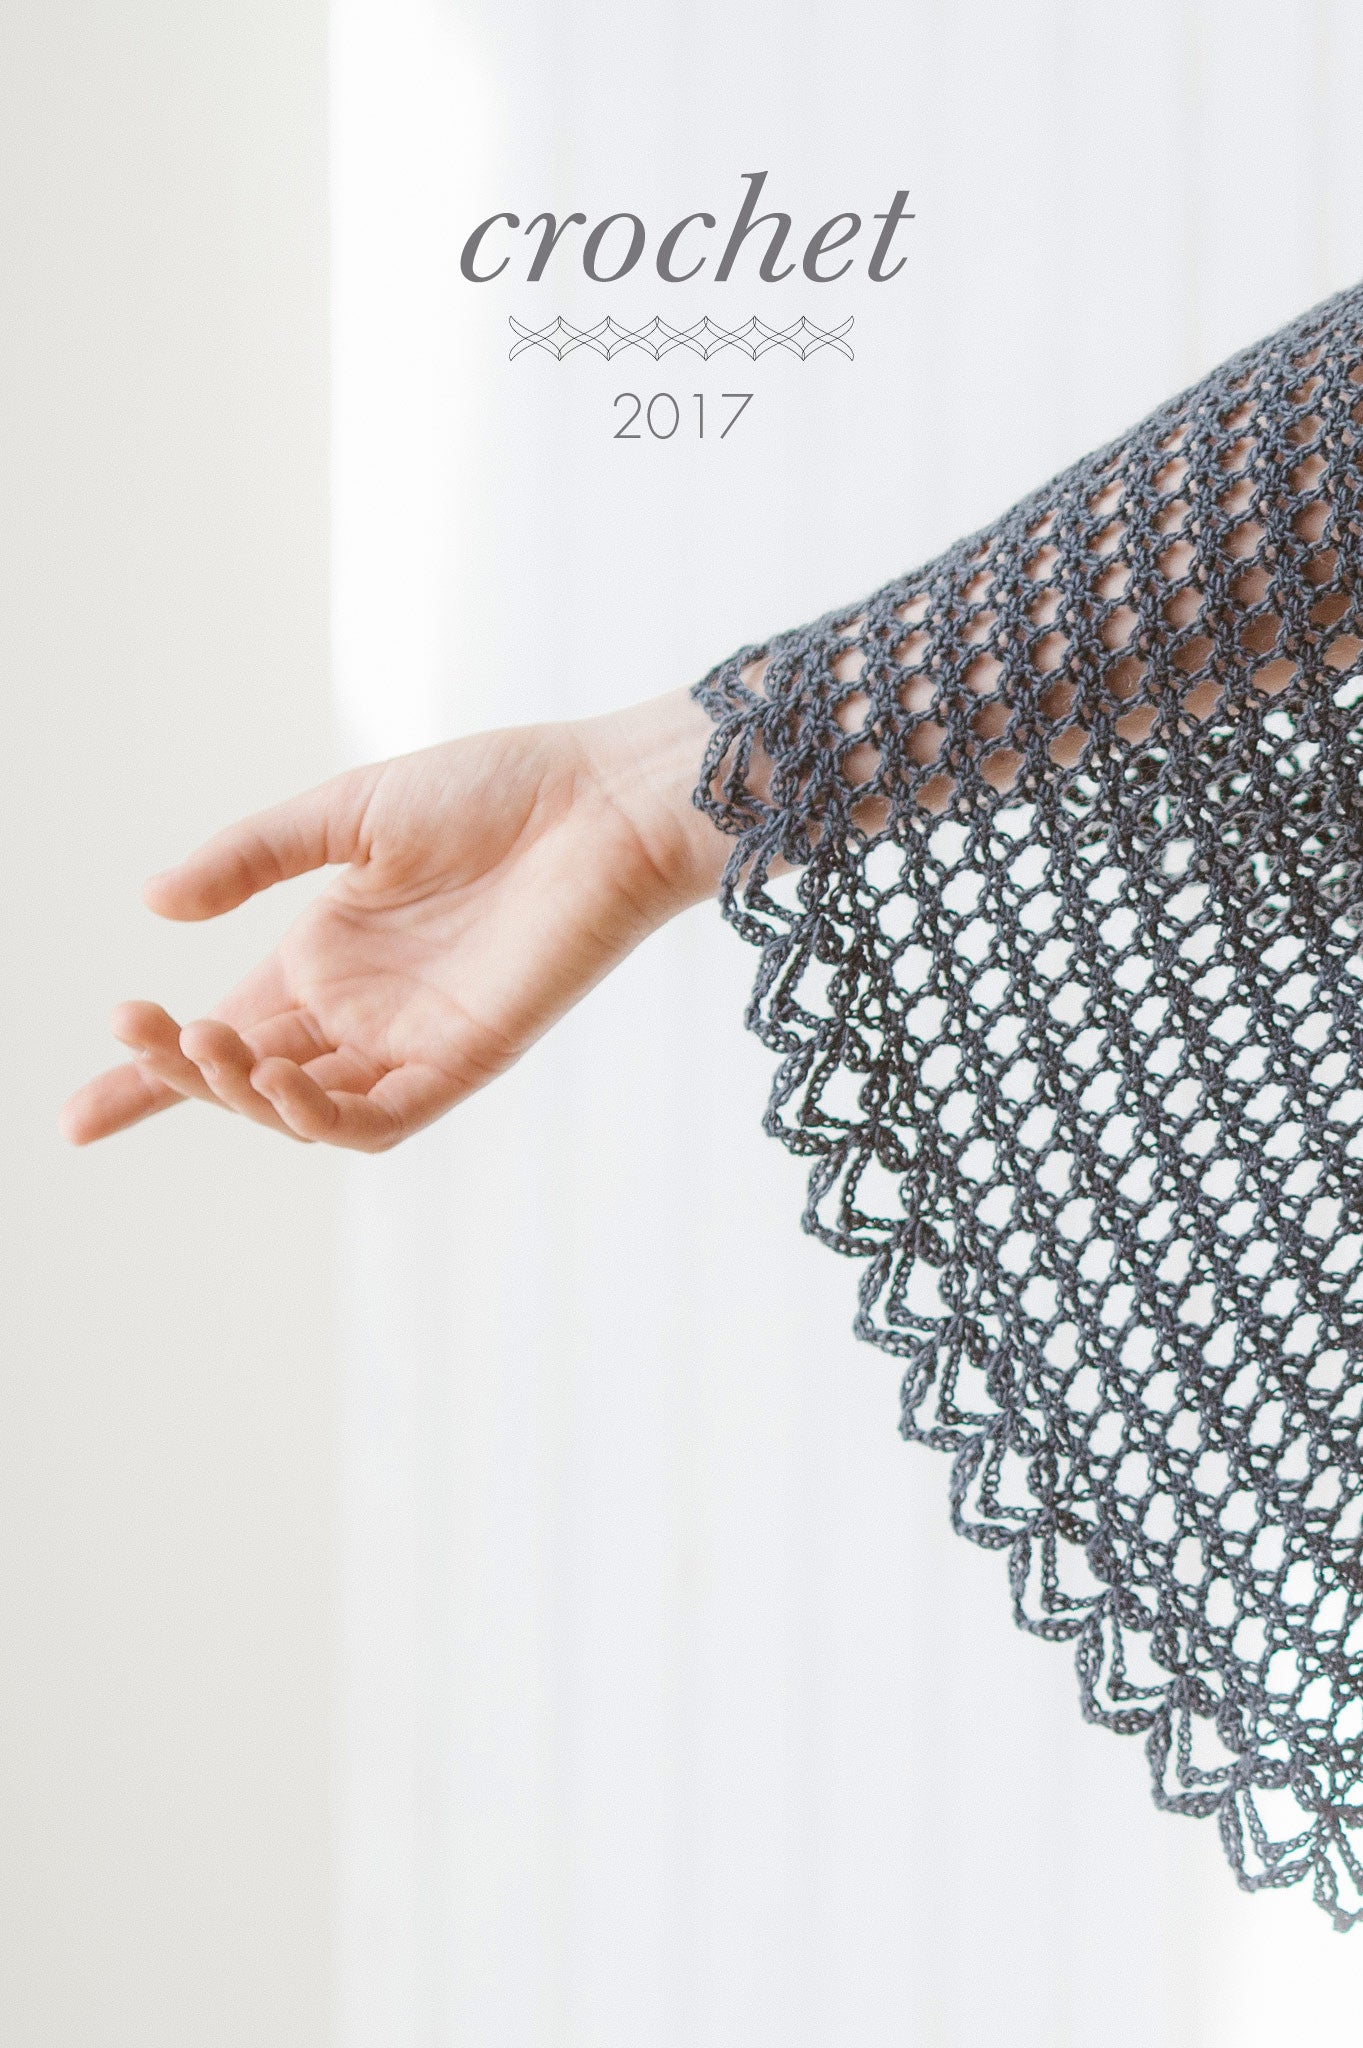 https://quinceandco.com/products/crochet-2017-crochet-pattern-collection